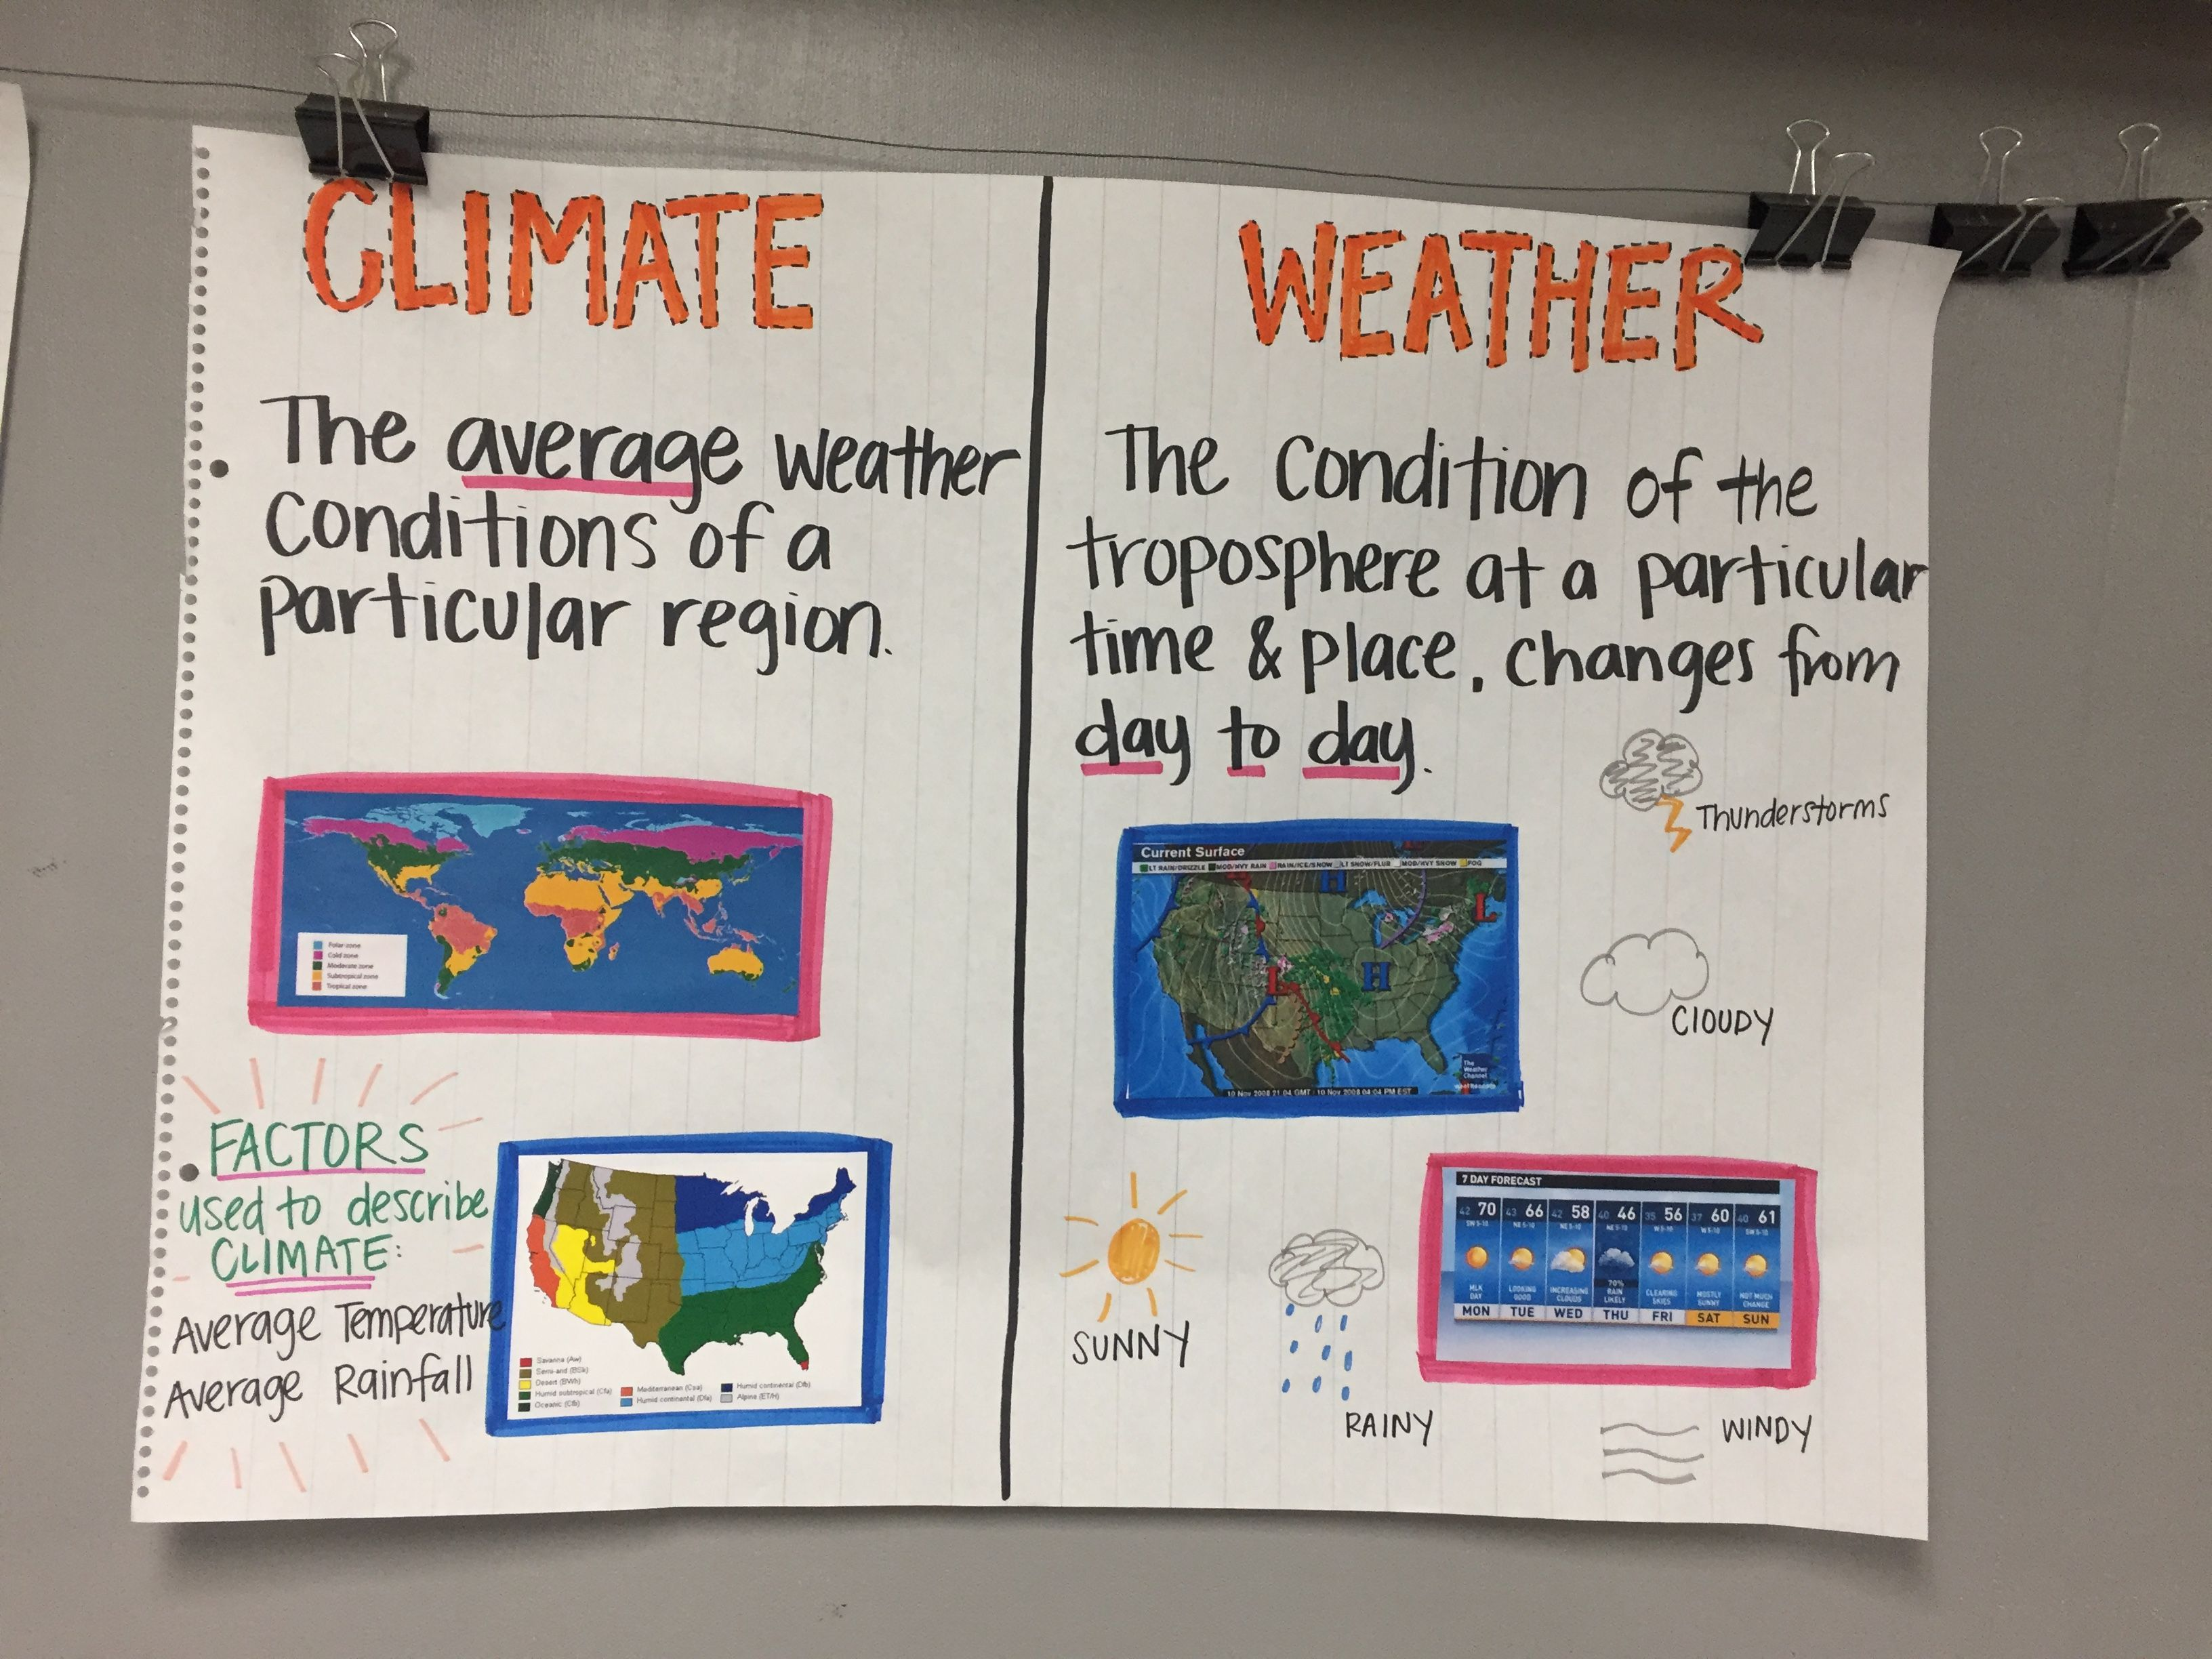 hight resolution of We have one day where we are discussing climate and I think this would be a  good review or introductory…   Weather science